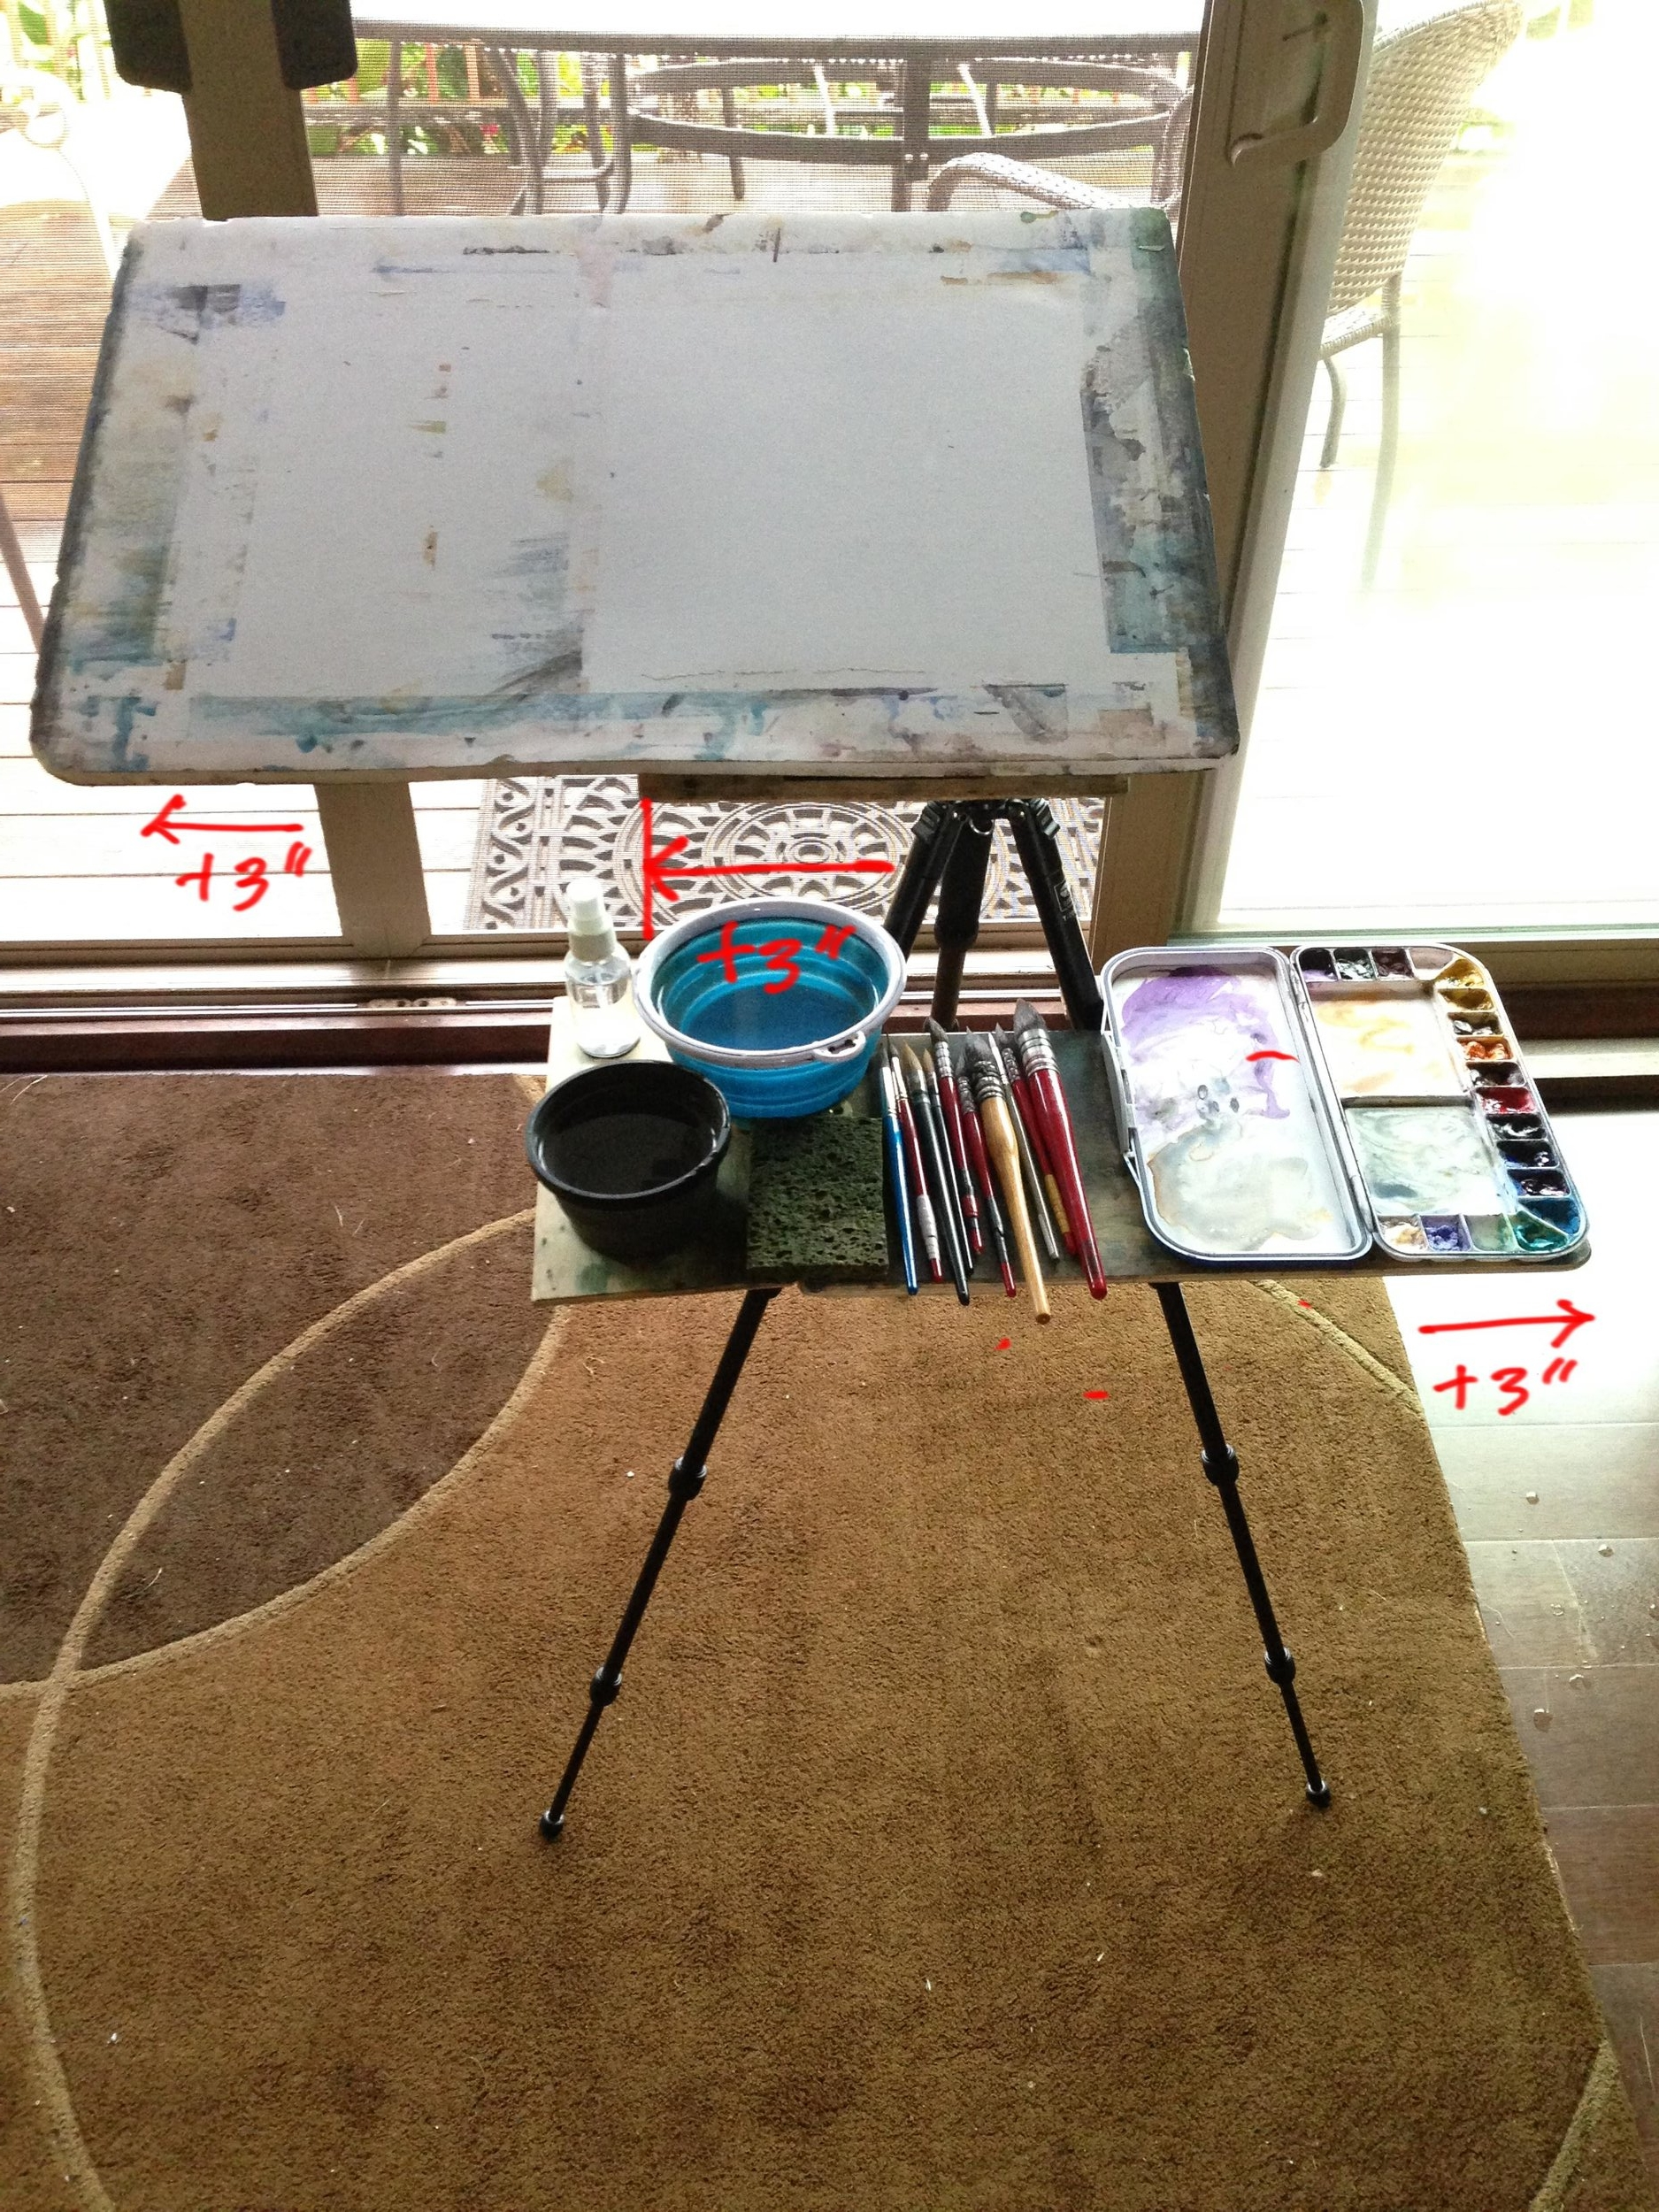 """my current setup. in total, I have 9"""" more on the right, which allows me to fully access my palette. My shelf is also wider, which allows a second water bowl."""